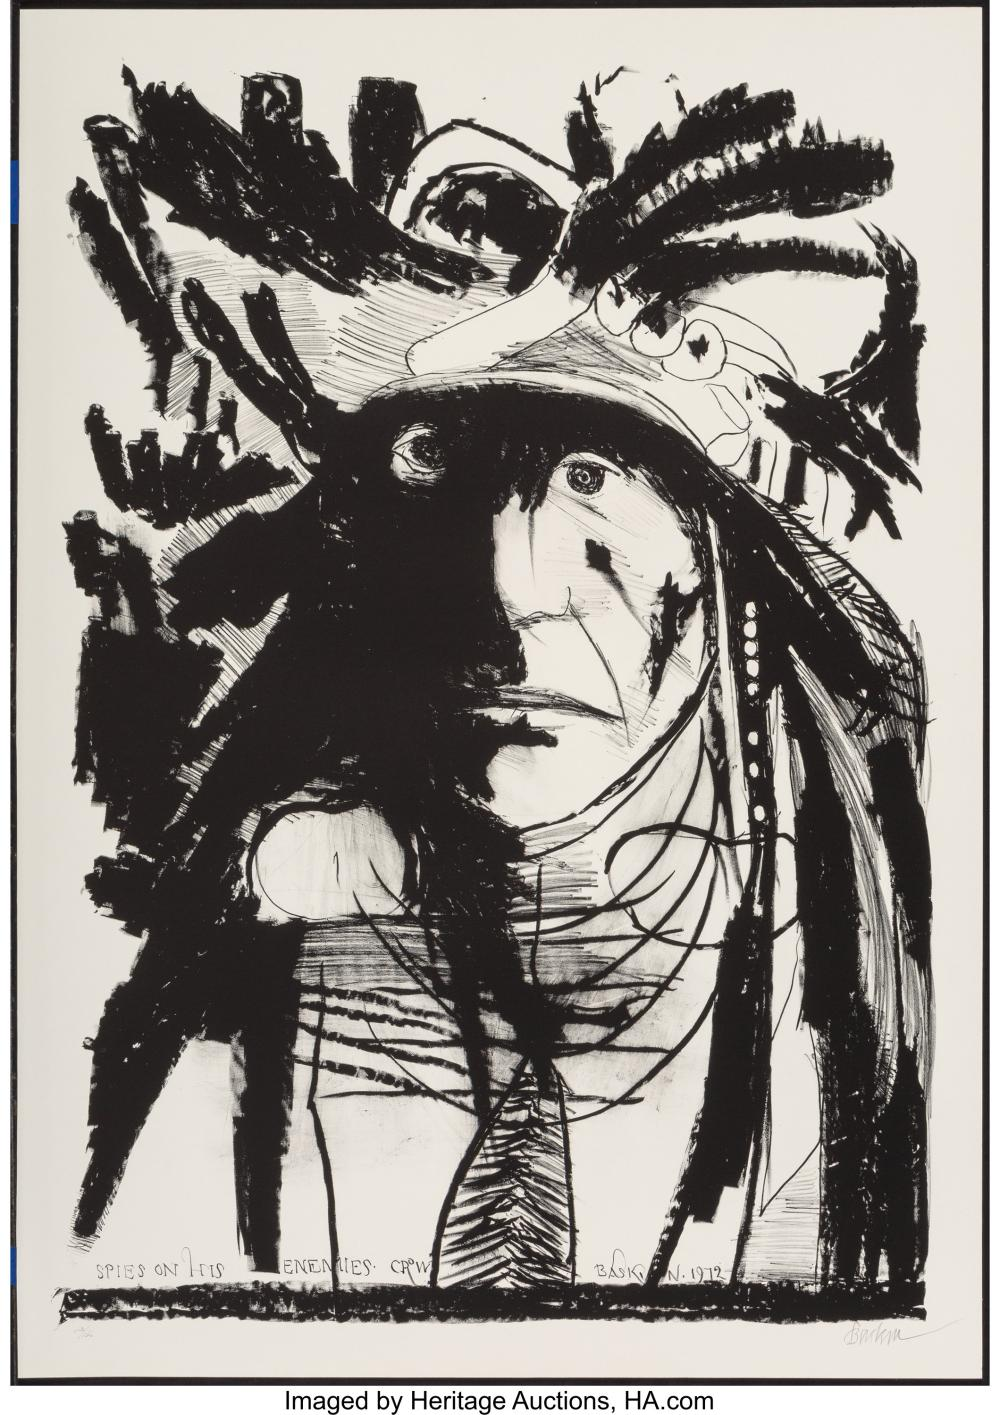 Lot 21351: Leonard Baskin (1922-2000) Spies on his Enemies - Crow, 1972 Lithograph on paper